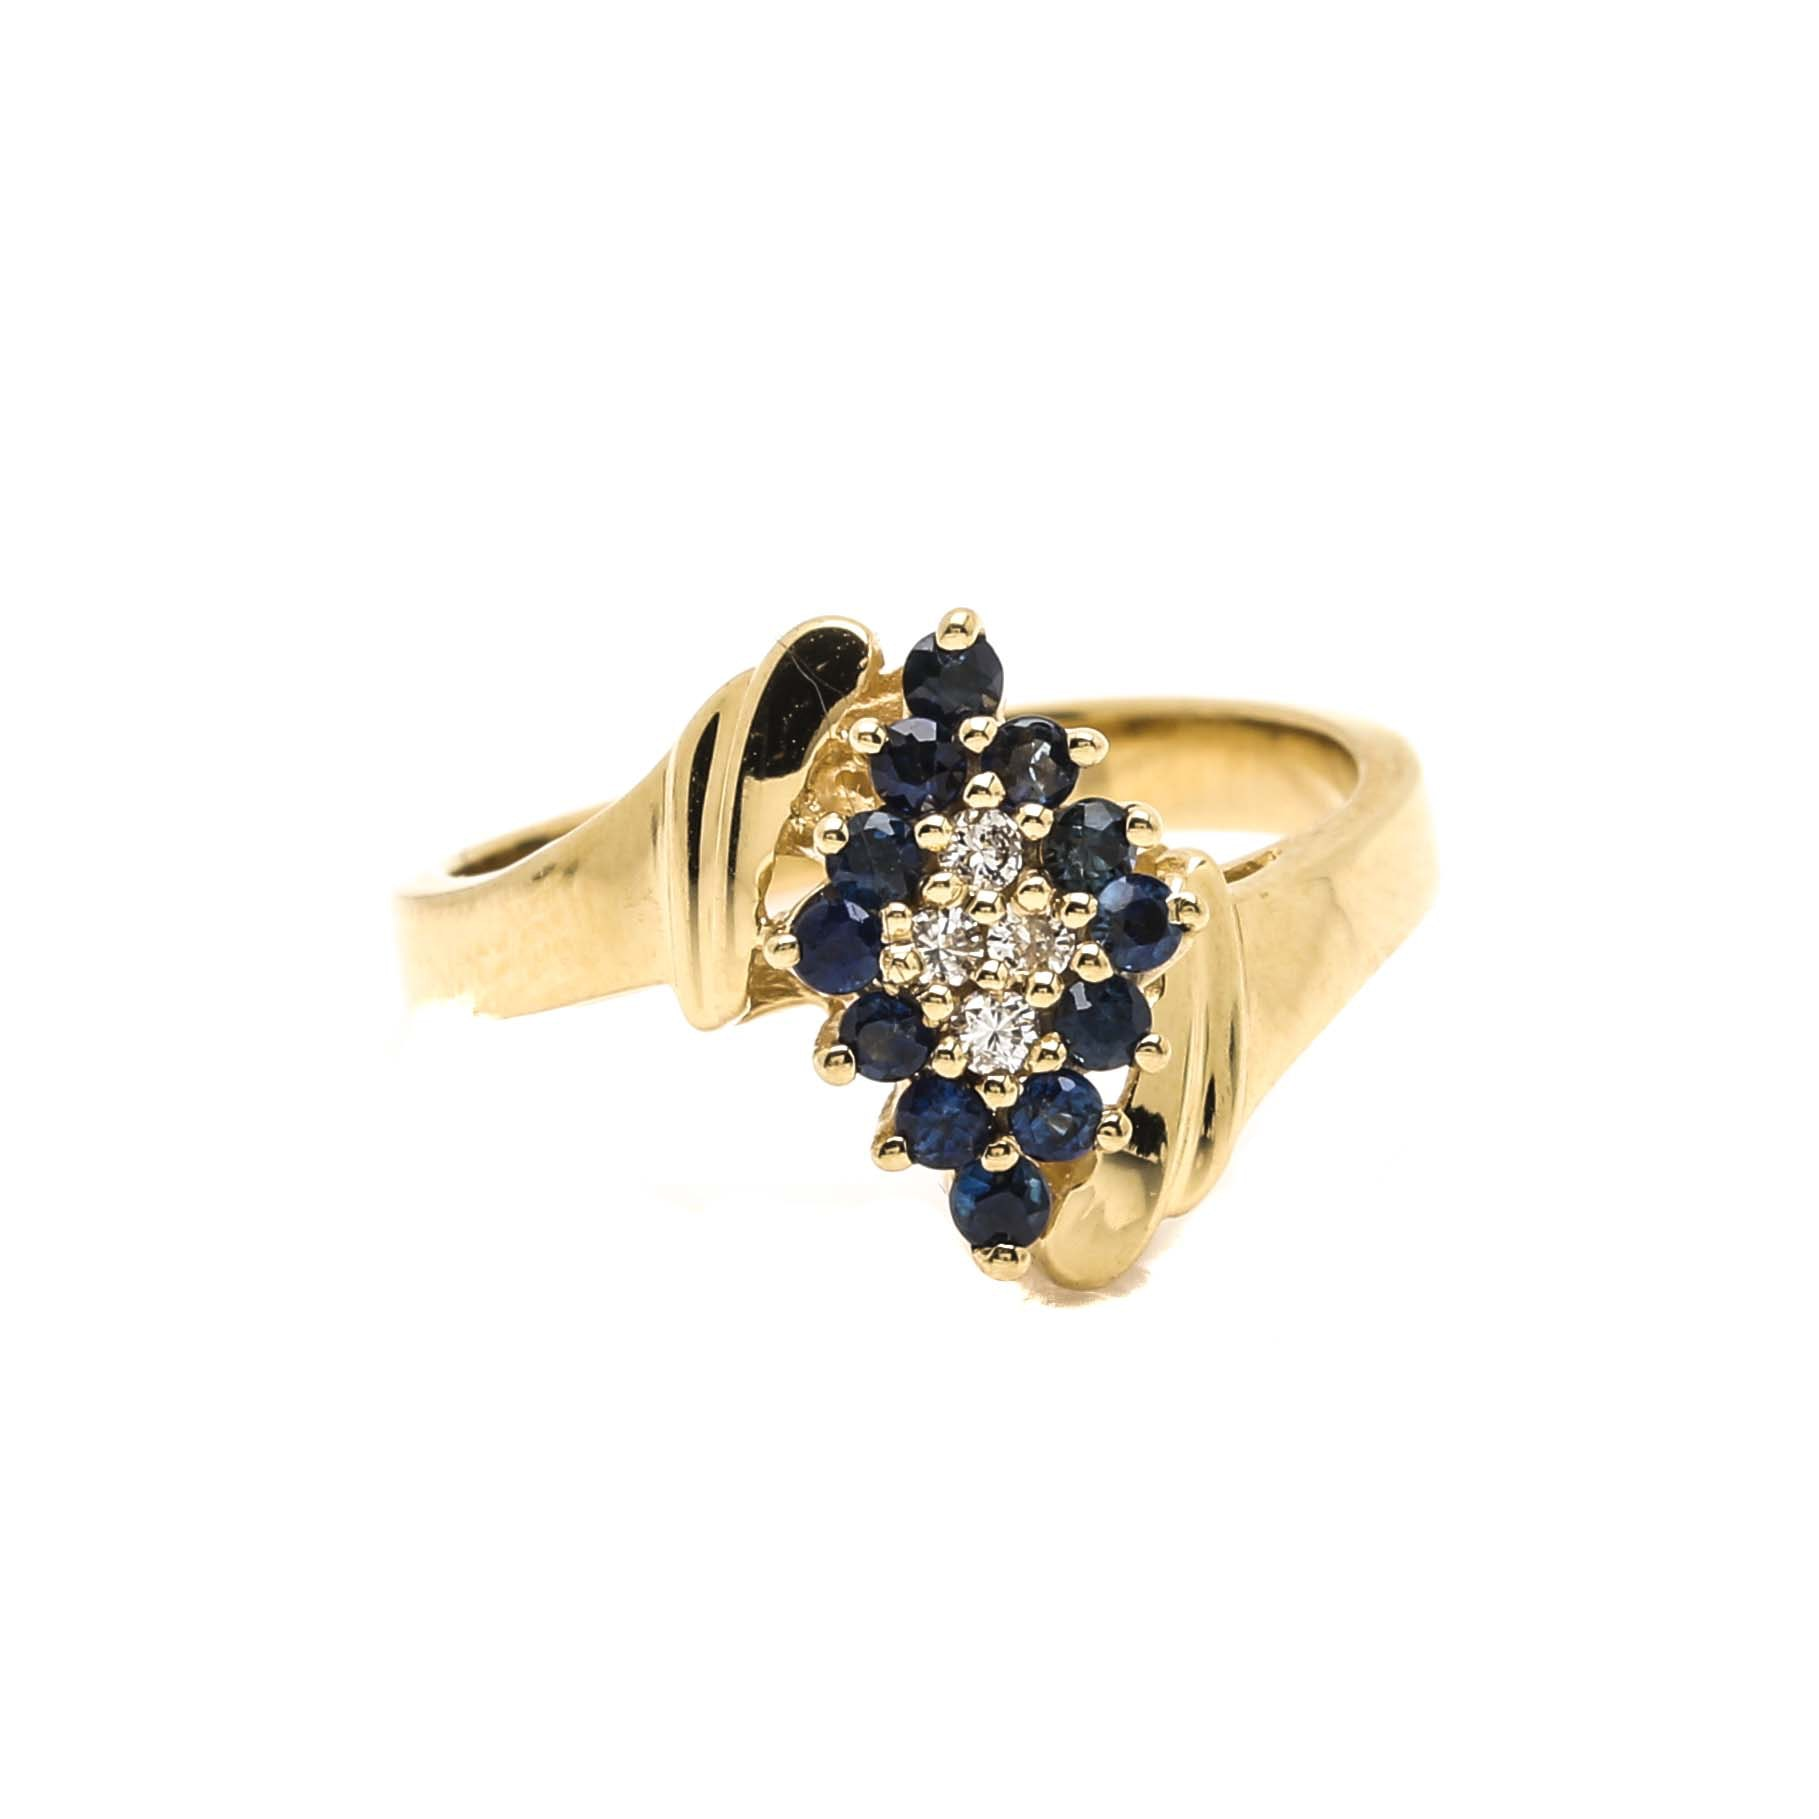 Ostby & Barton 14K Yellow Gold Diamond and Sapphire Ring